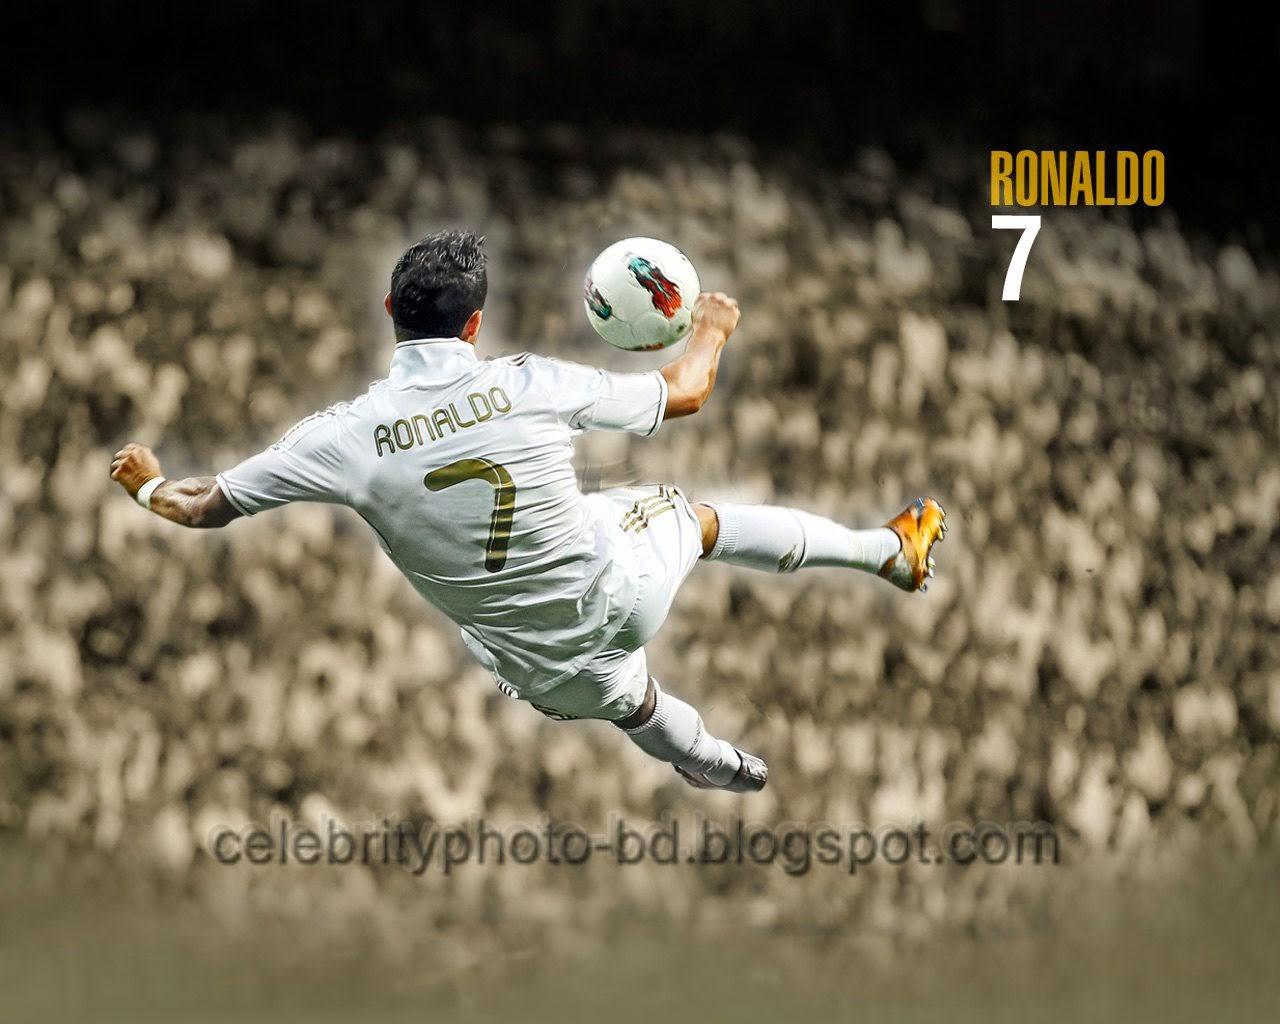 World's Great Football Player Cristiano Ronaldo Stylish hd Wallpapers And Photos With Short Biography